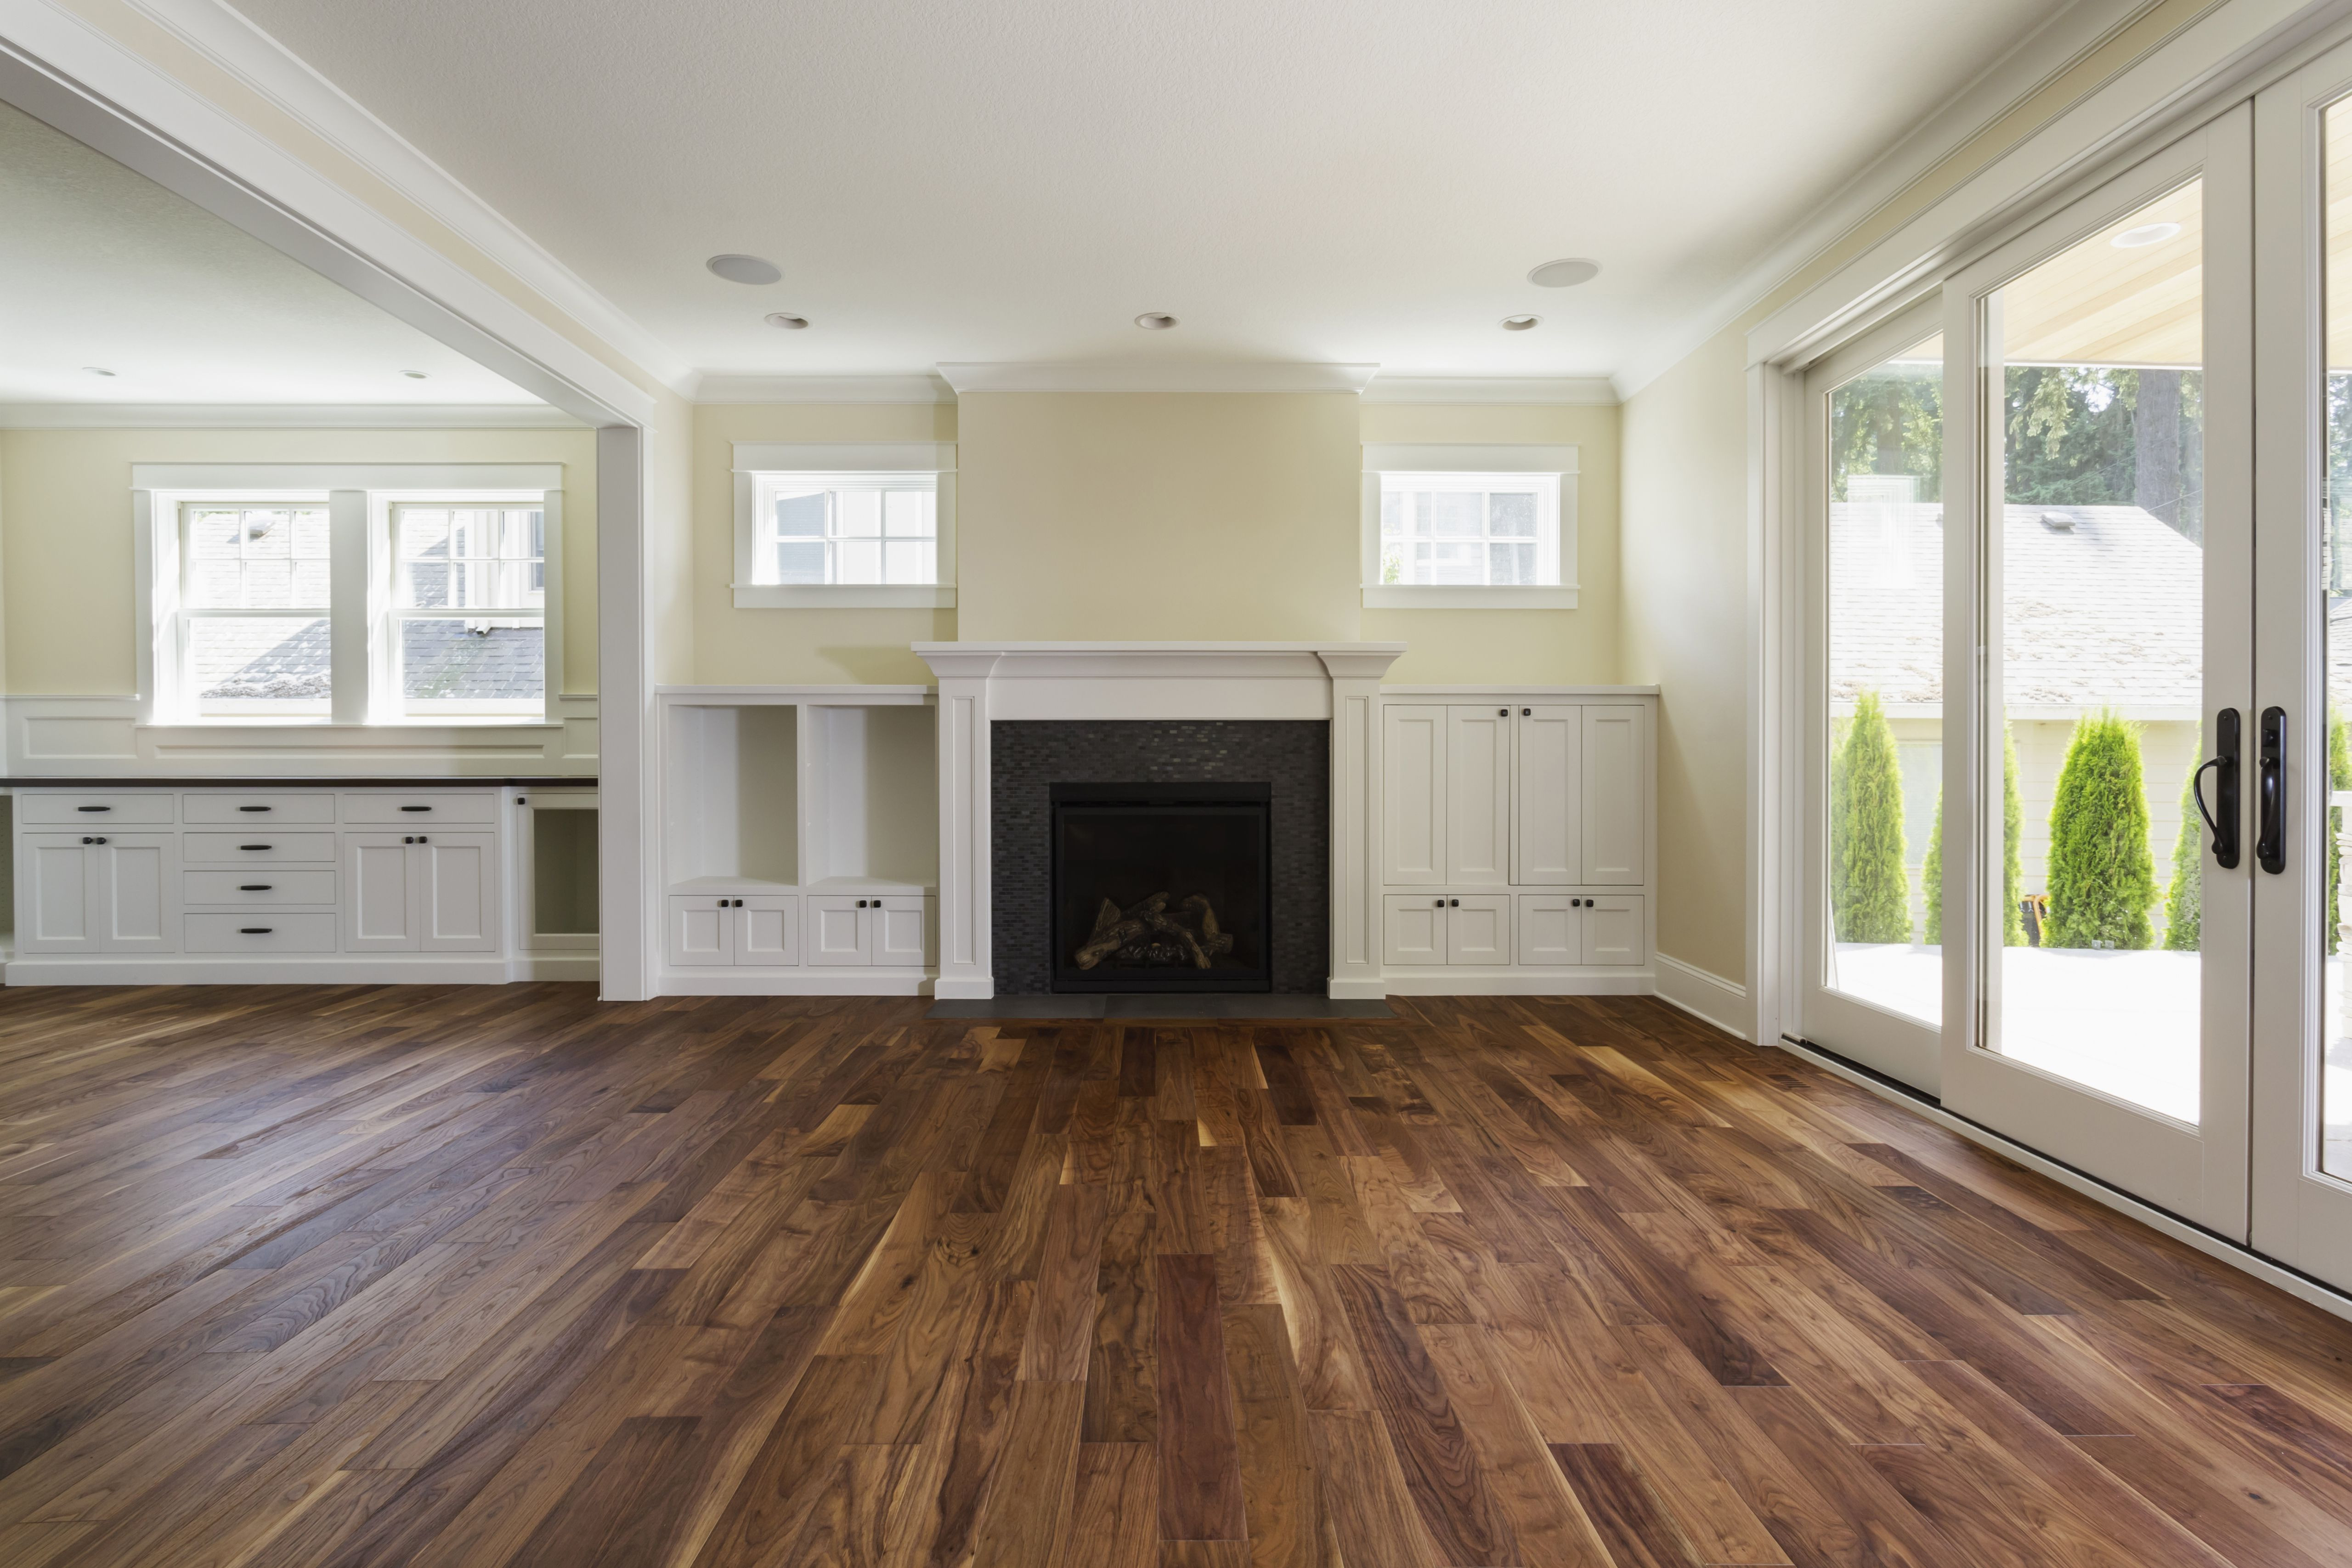 unfinished hardwood flooring prices of the pros and cons of prefinished hardwood flooring throughout fireplace and built in shelves in living room 482143011 57bef8e33df78cc16e035397